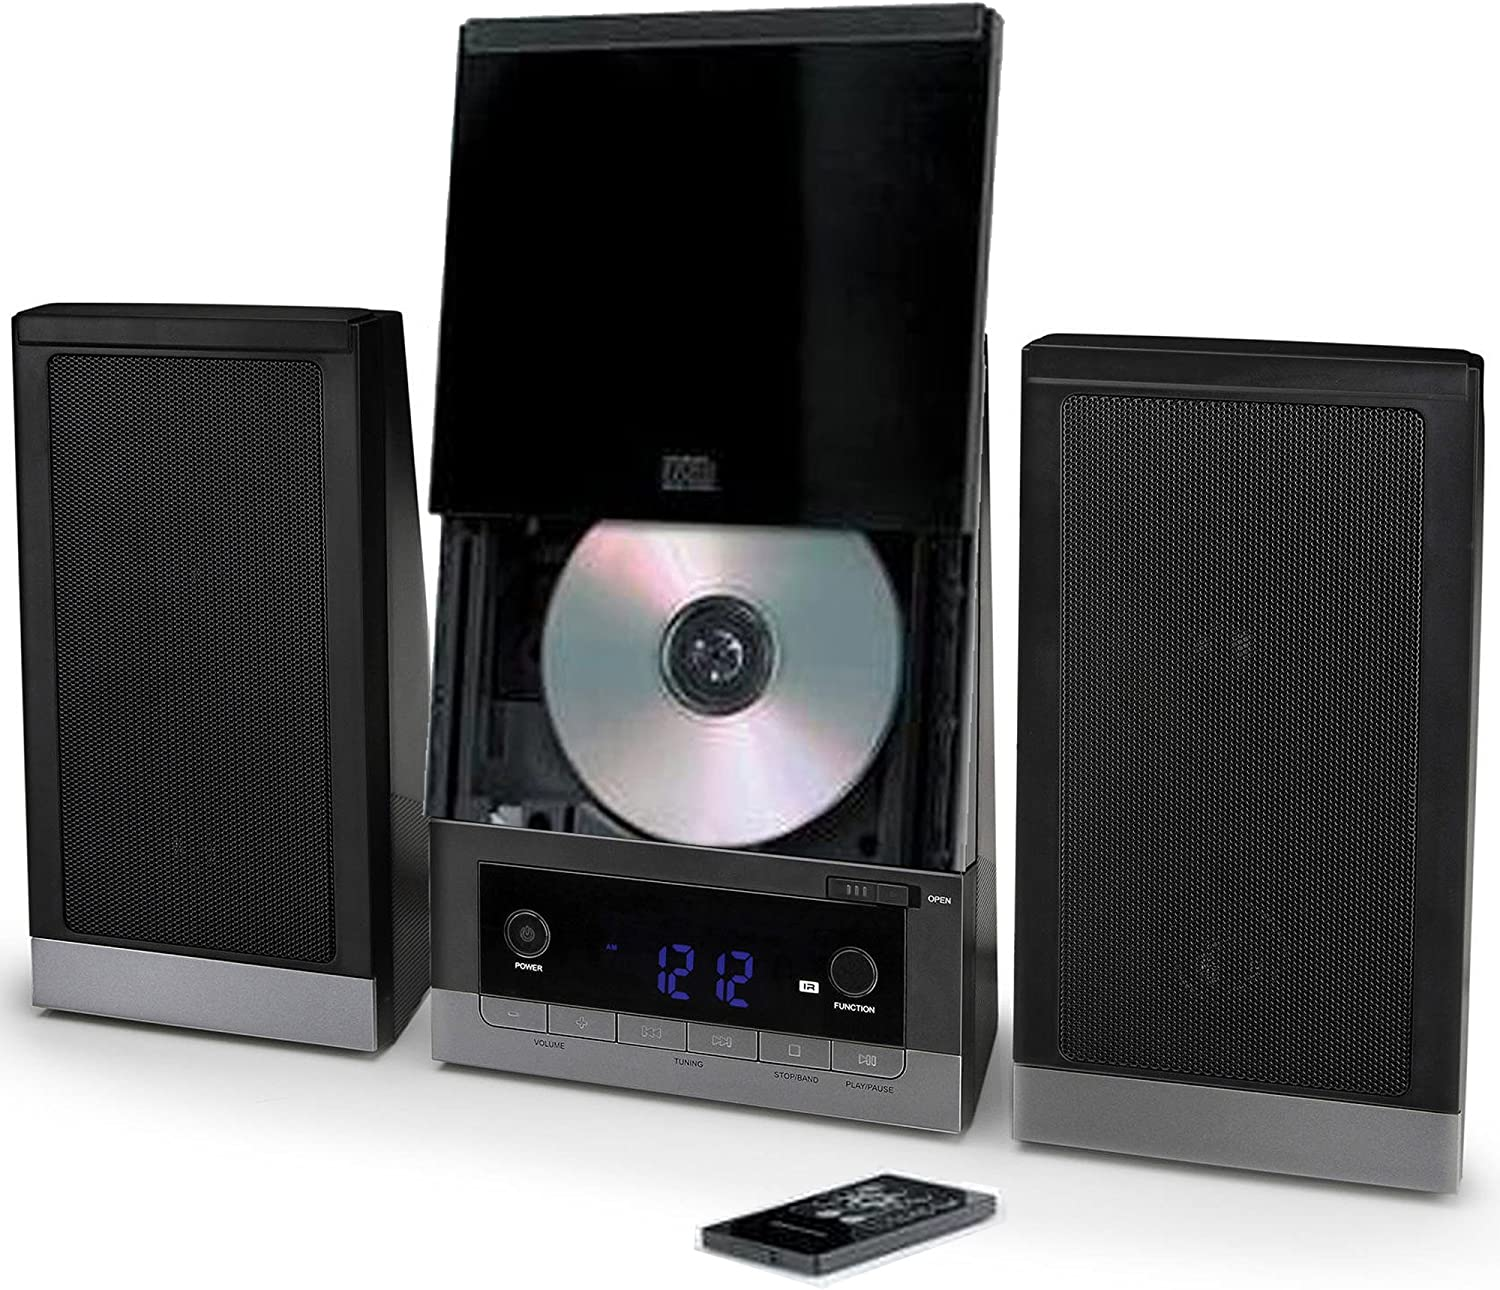 ONN Audio Compact Home CD Music Shelf System Vertical-Loading with Stereo Dynamic Speakers & Digital AM/FM Radio LCD Display & Aux Line in ONB-203 C (Renewed)